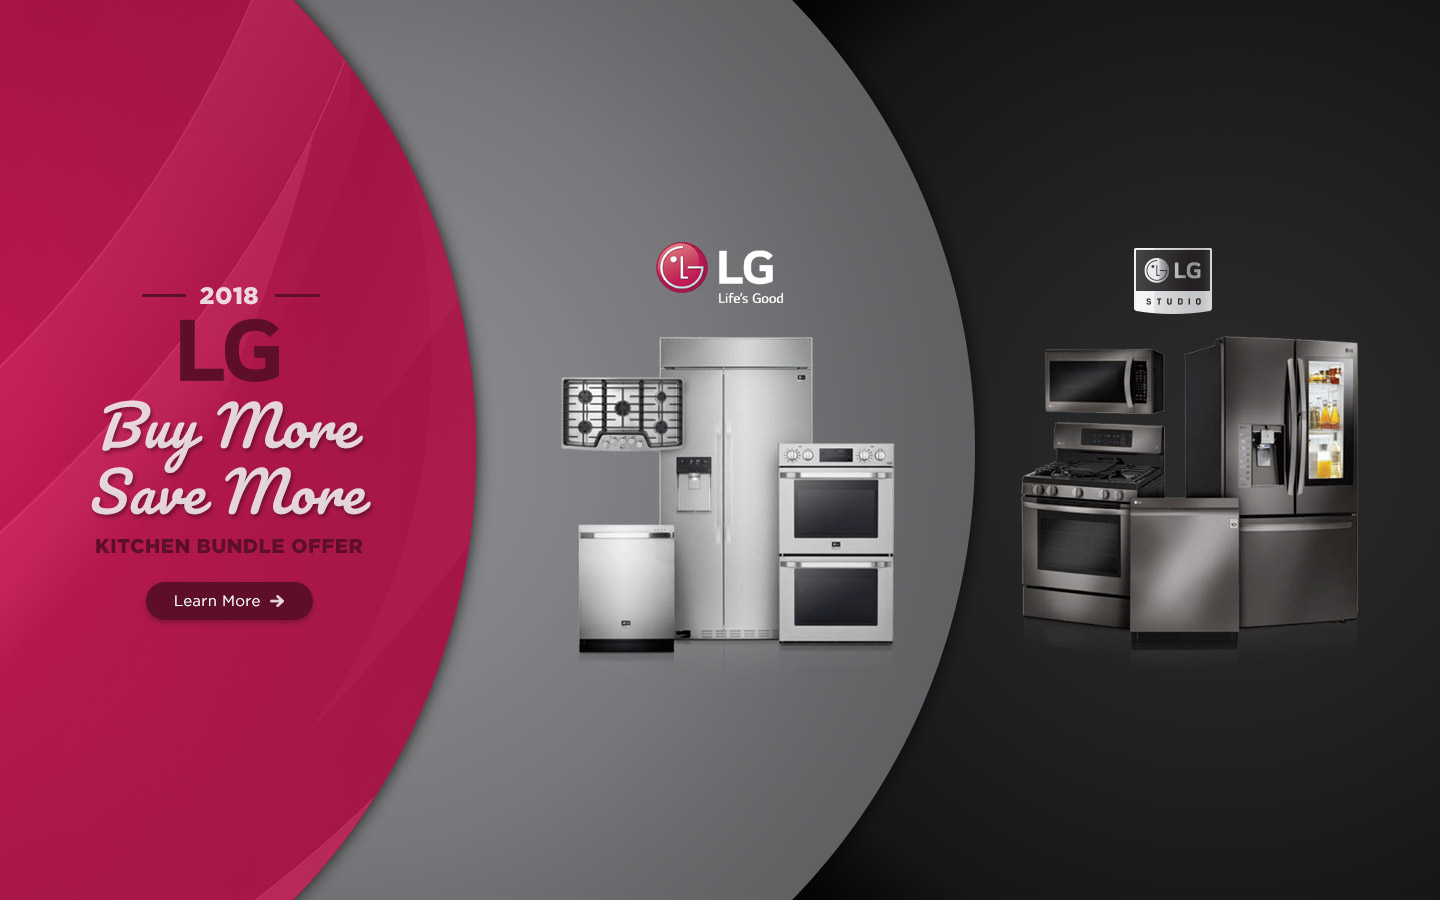 Marvelous LG Buy More Save More 2018